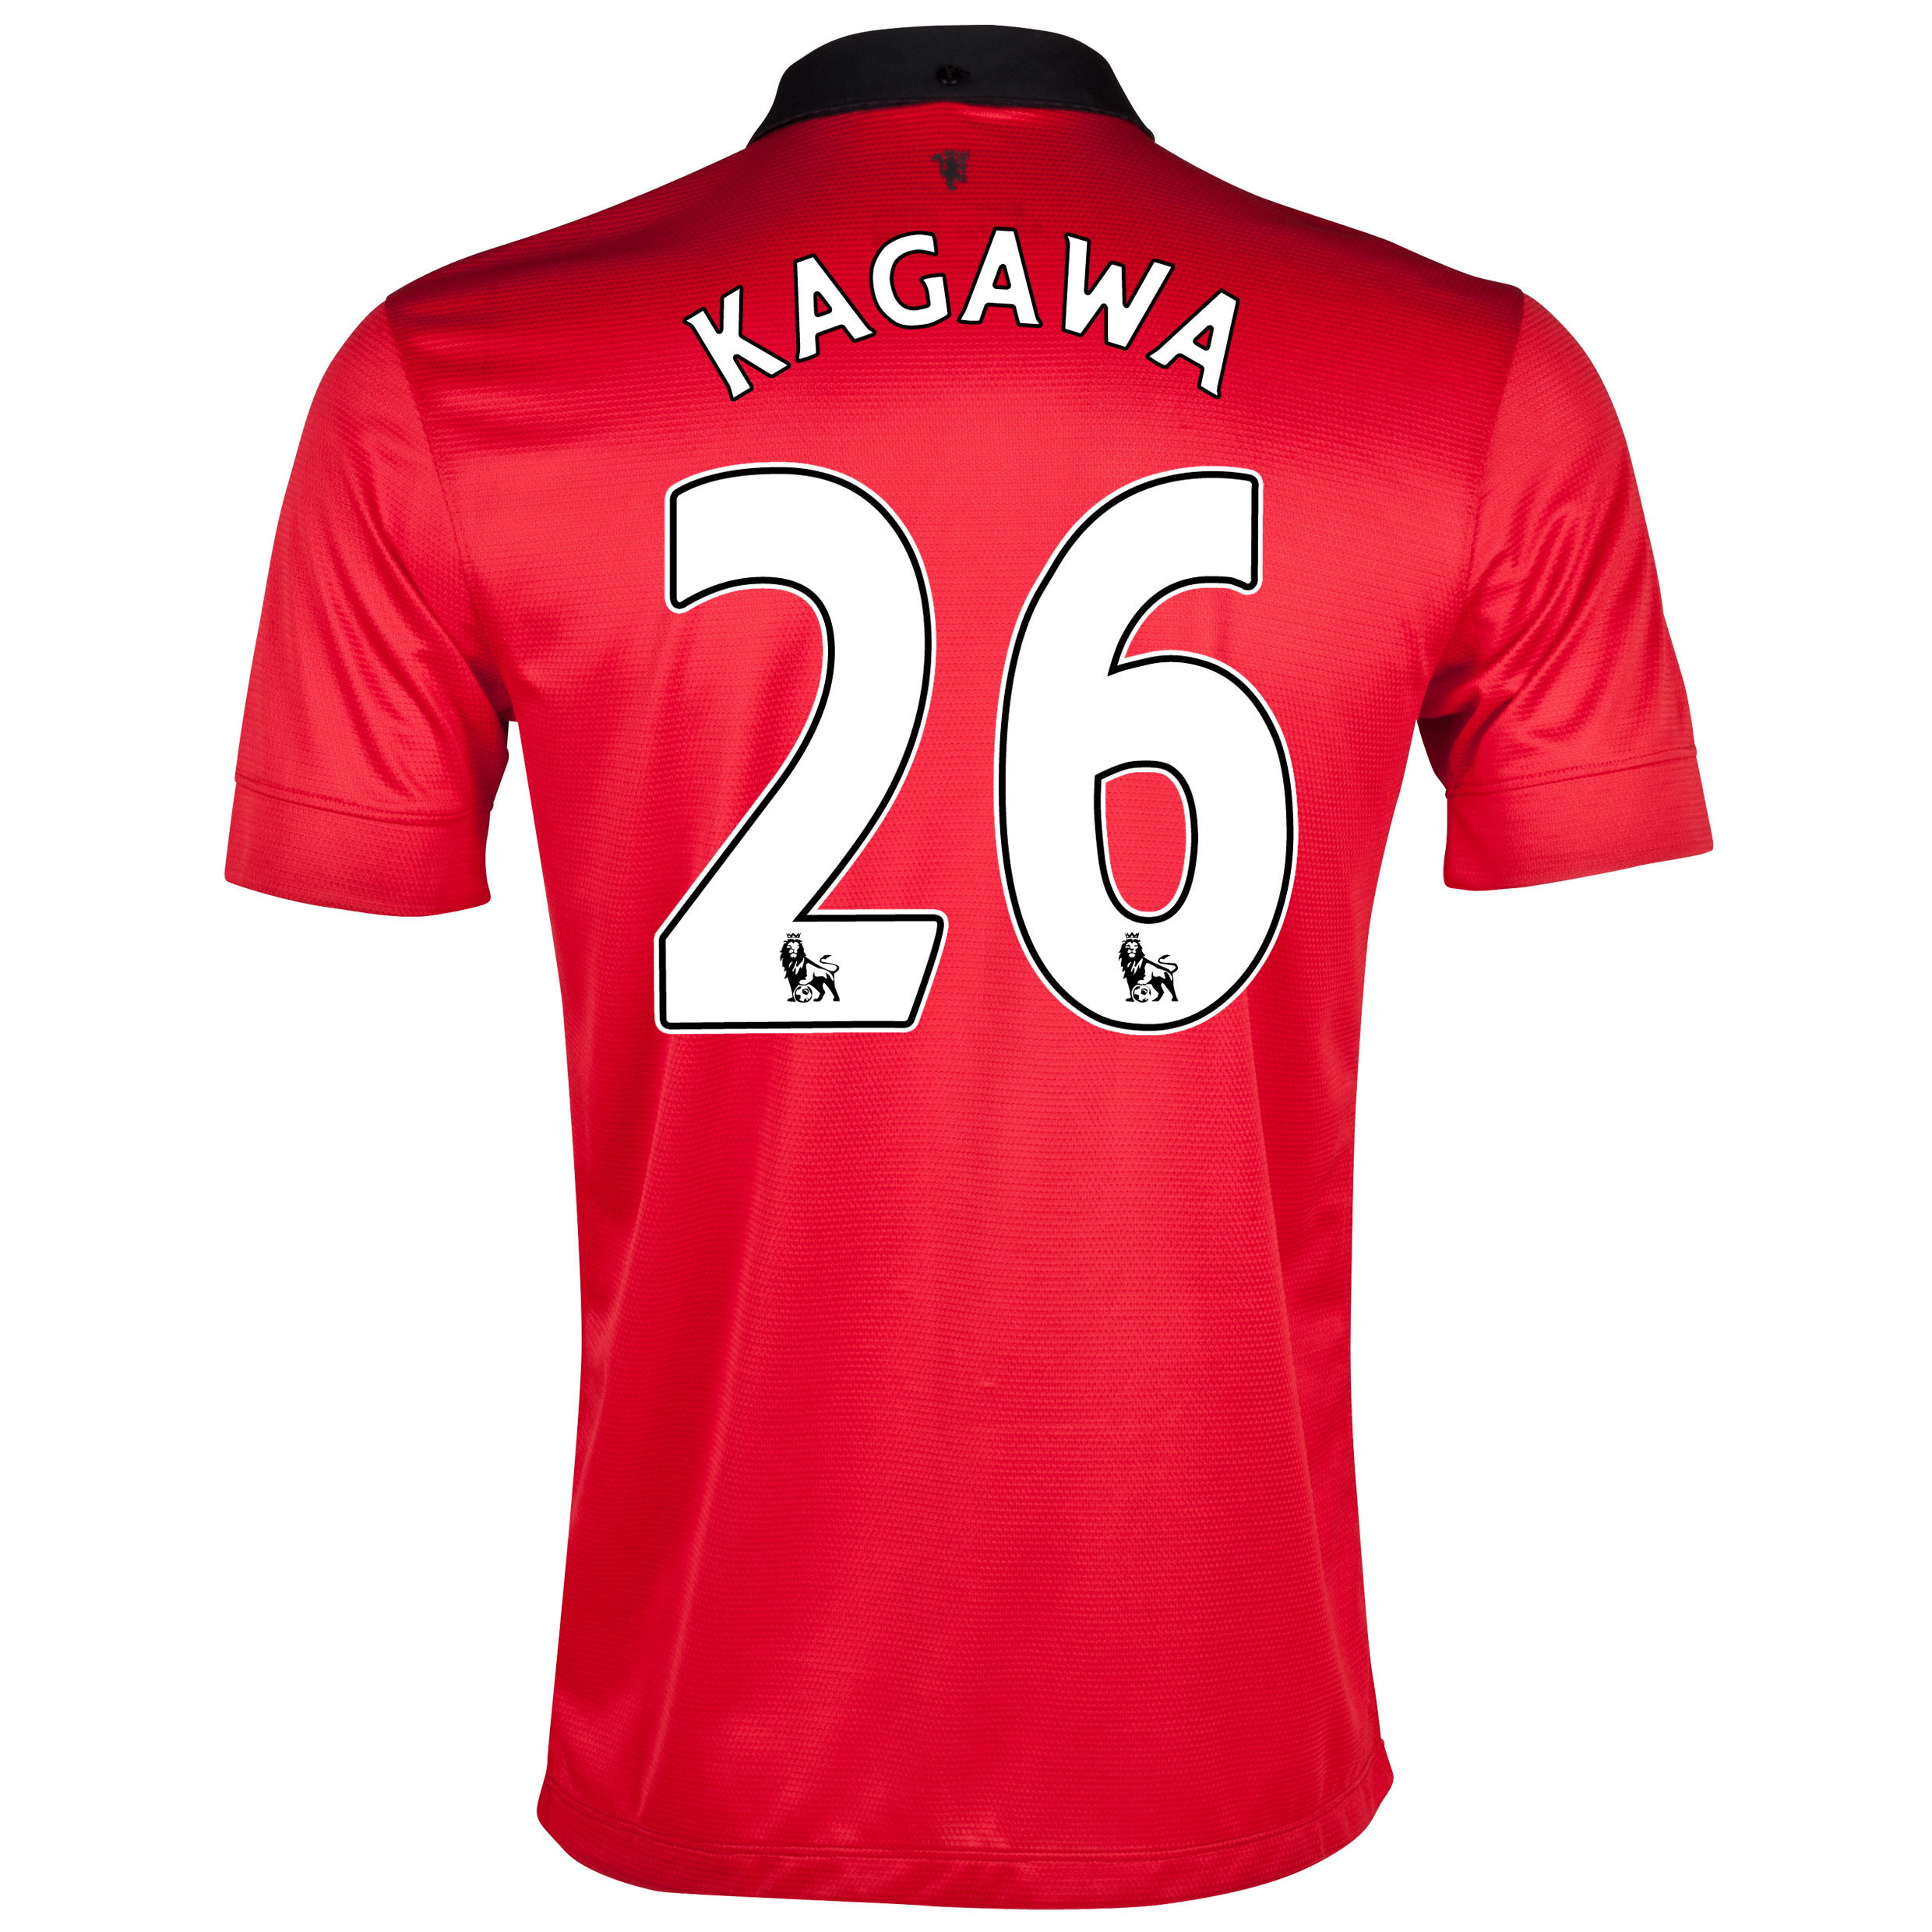 Manchester United Home Shirt 2013/14 with Kagawa 26 printing